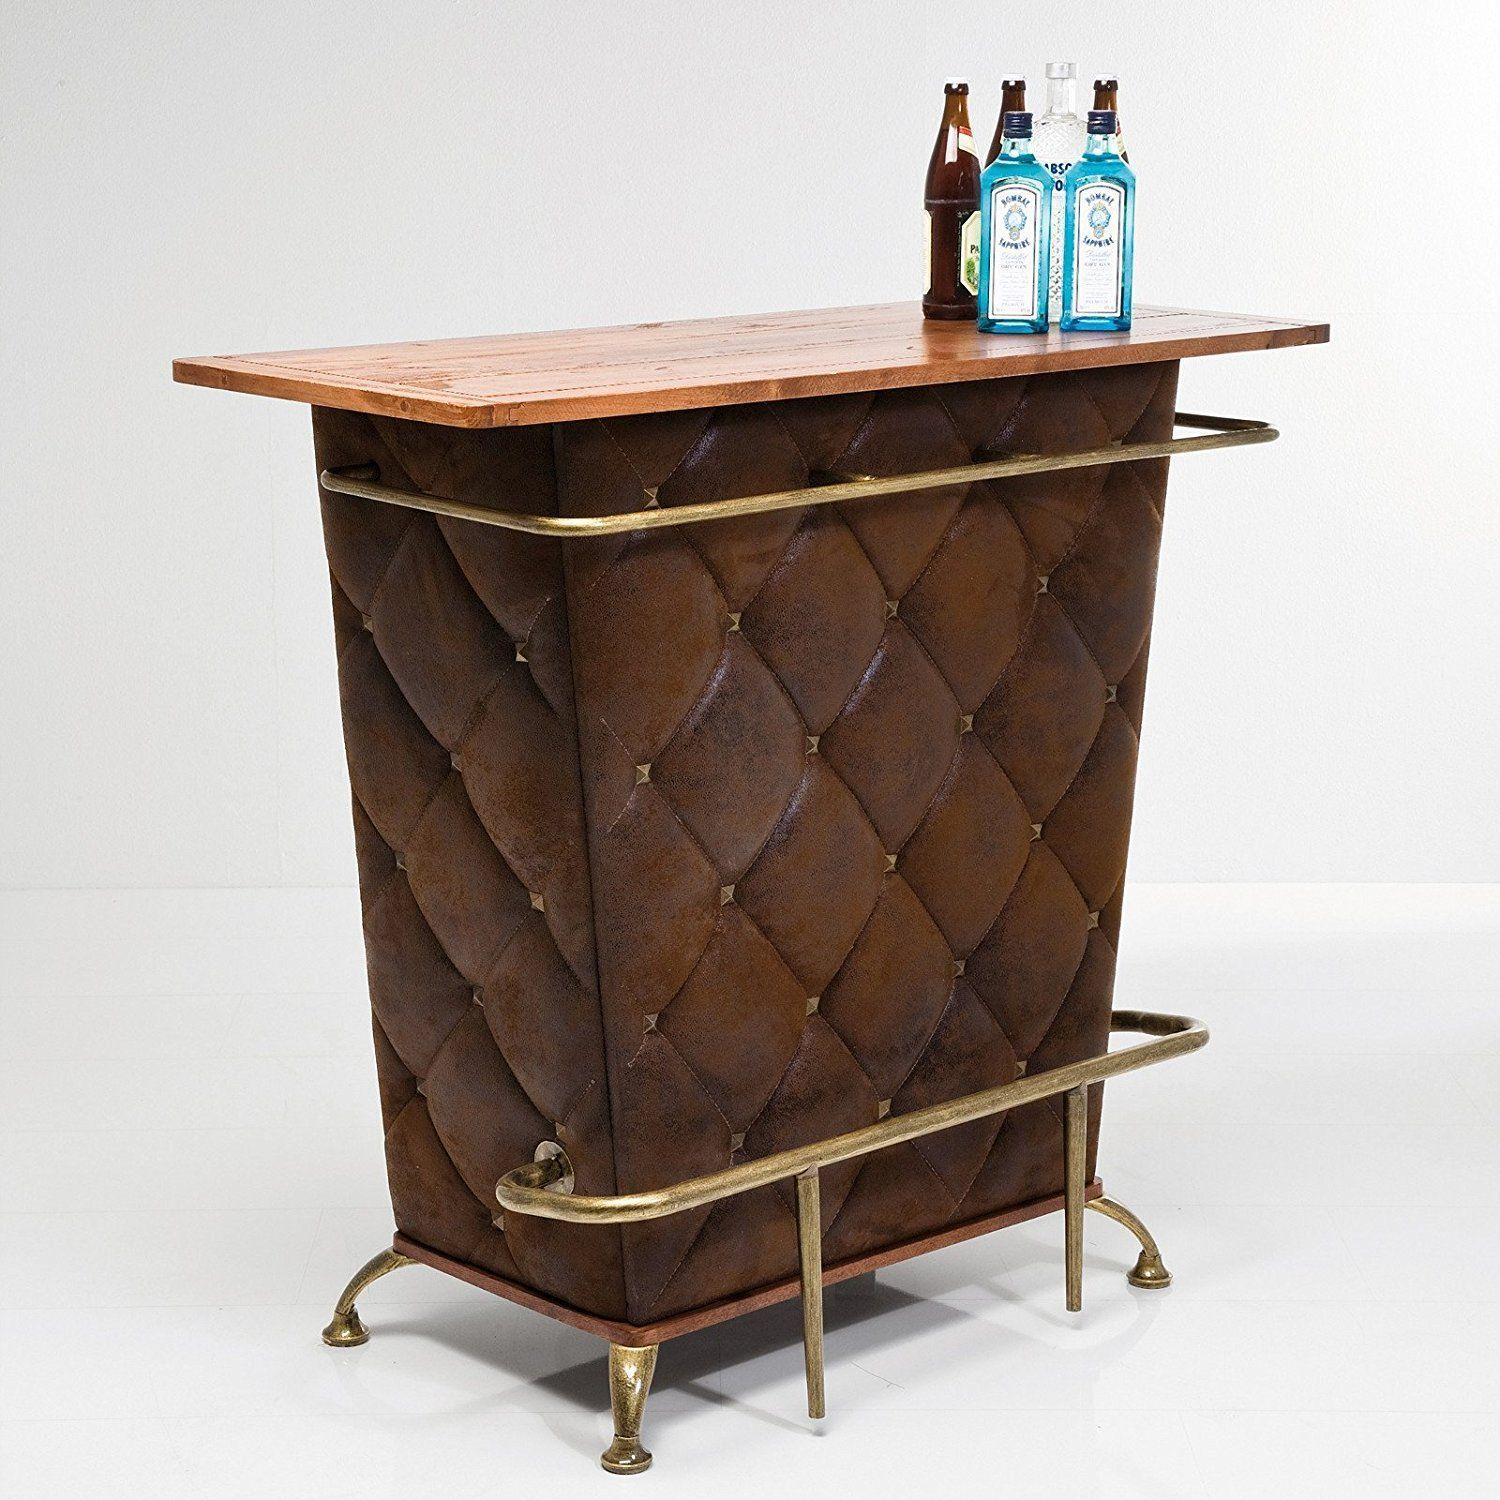 Lounge house bar table counter minibar design furniture cocktailbar